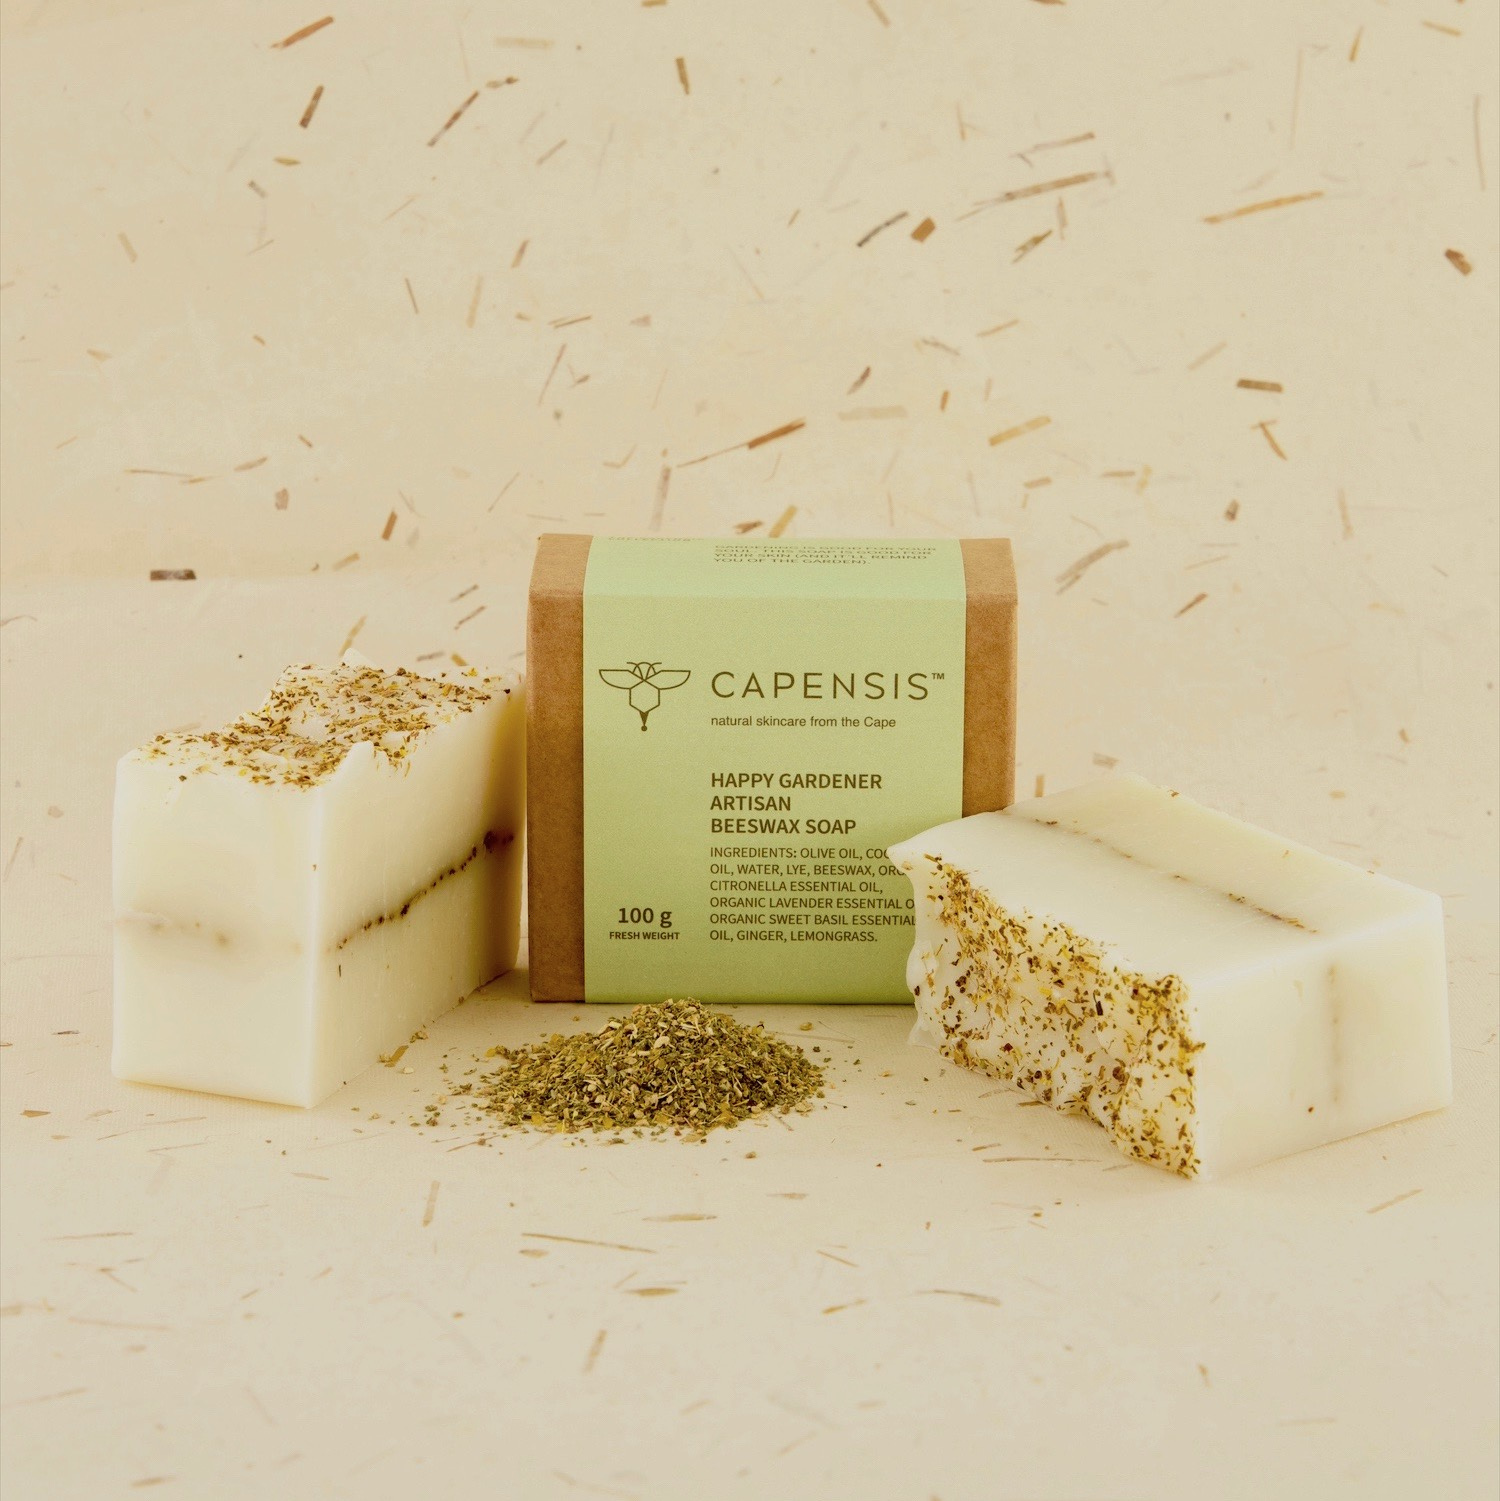 Gardening is good for your soul. This soap is too. That's why no gardener should be without this soap! The combination of oils and essential oils in this soap are packed with antiseptic, bactericidal, deodorant and toning properties. It is relaxing, calming, uplifting and cleansing, comforting and helpful for clarity and strength of mind.